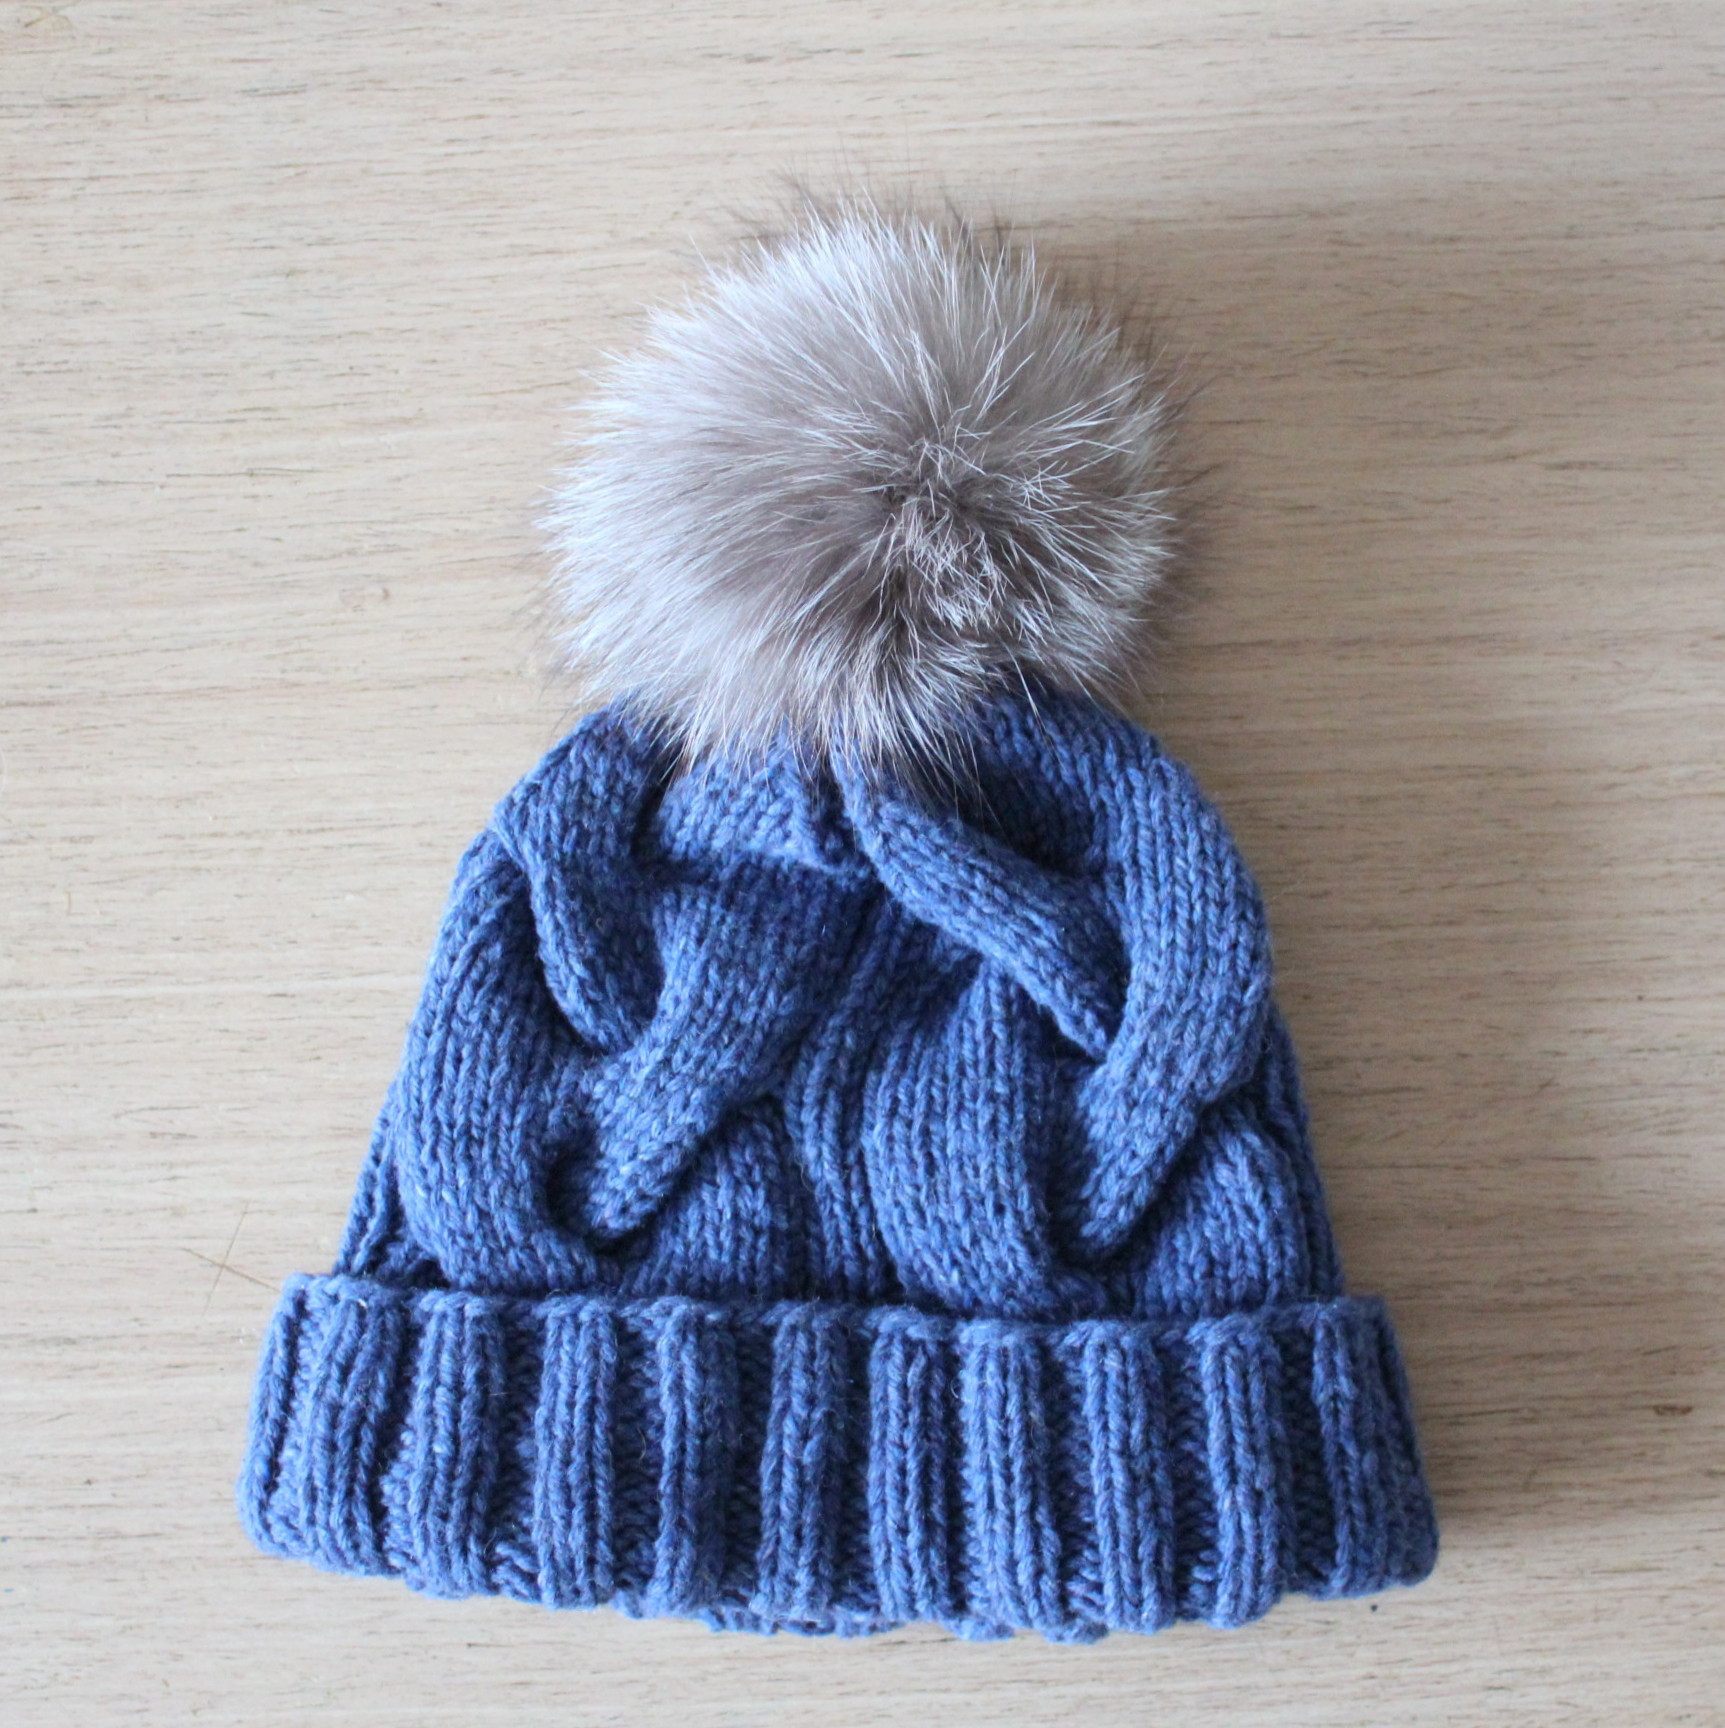 hat braided cable hat cashmere wool cashmere beanie denim blue blue beanie grey & blue beanie hat fur bobble hat fox fur pom pom